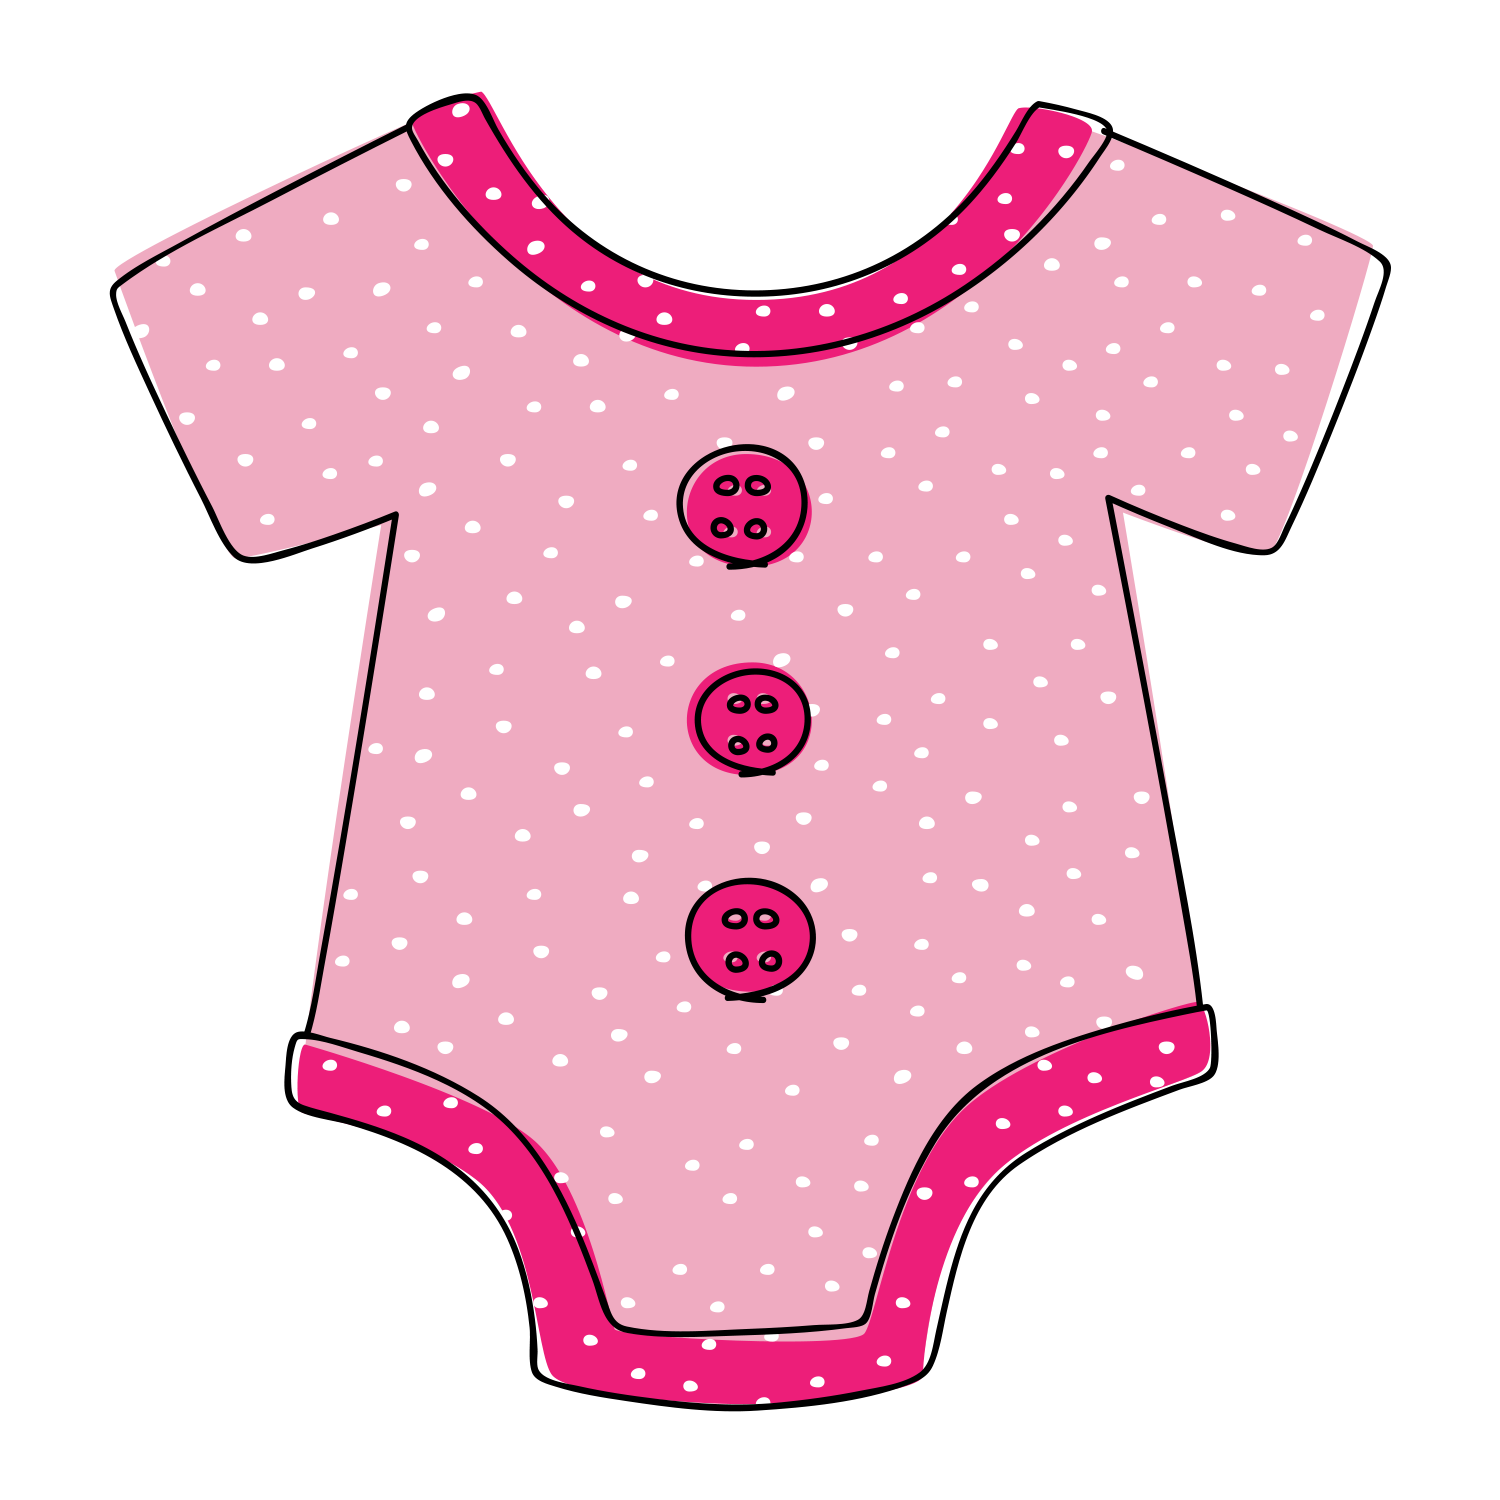 Baby pink onesie clipart picture transparent Free Downloadable Baby Onesie Clipart - Tulamama picture transparent